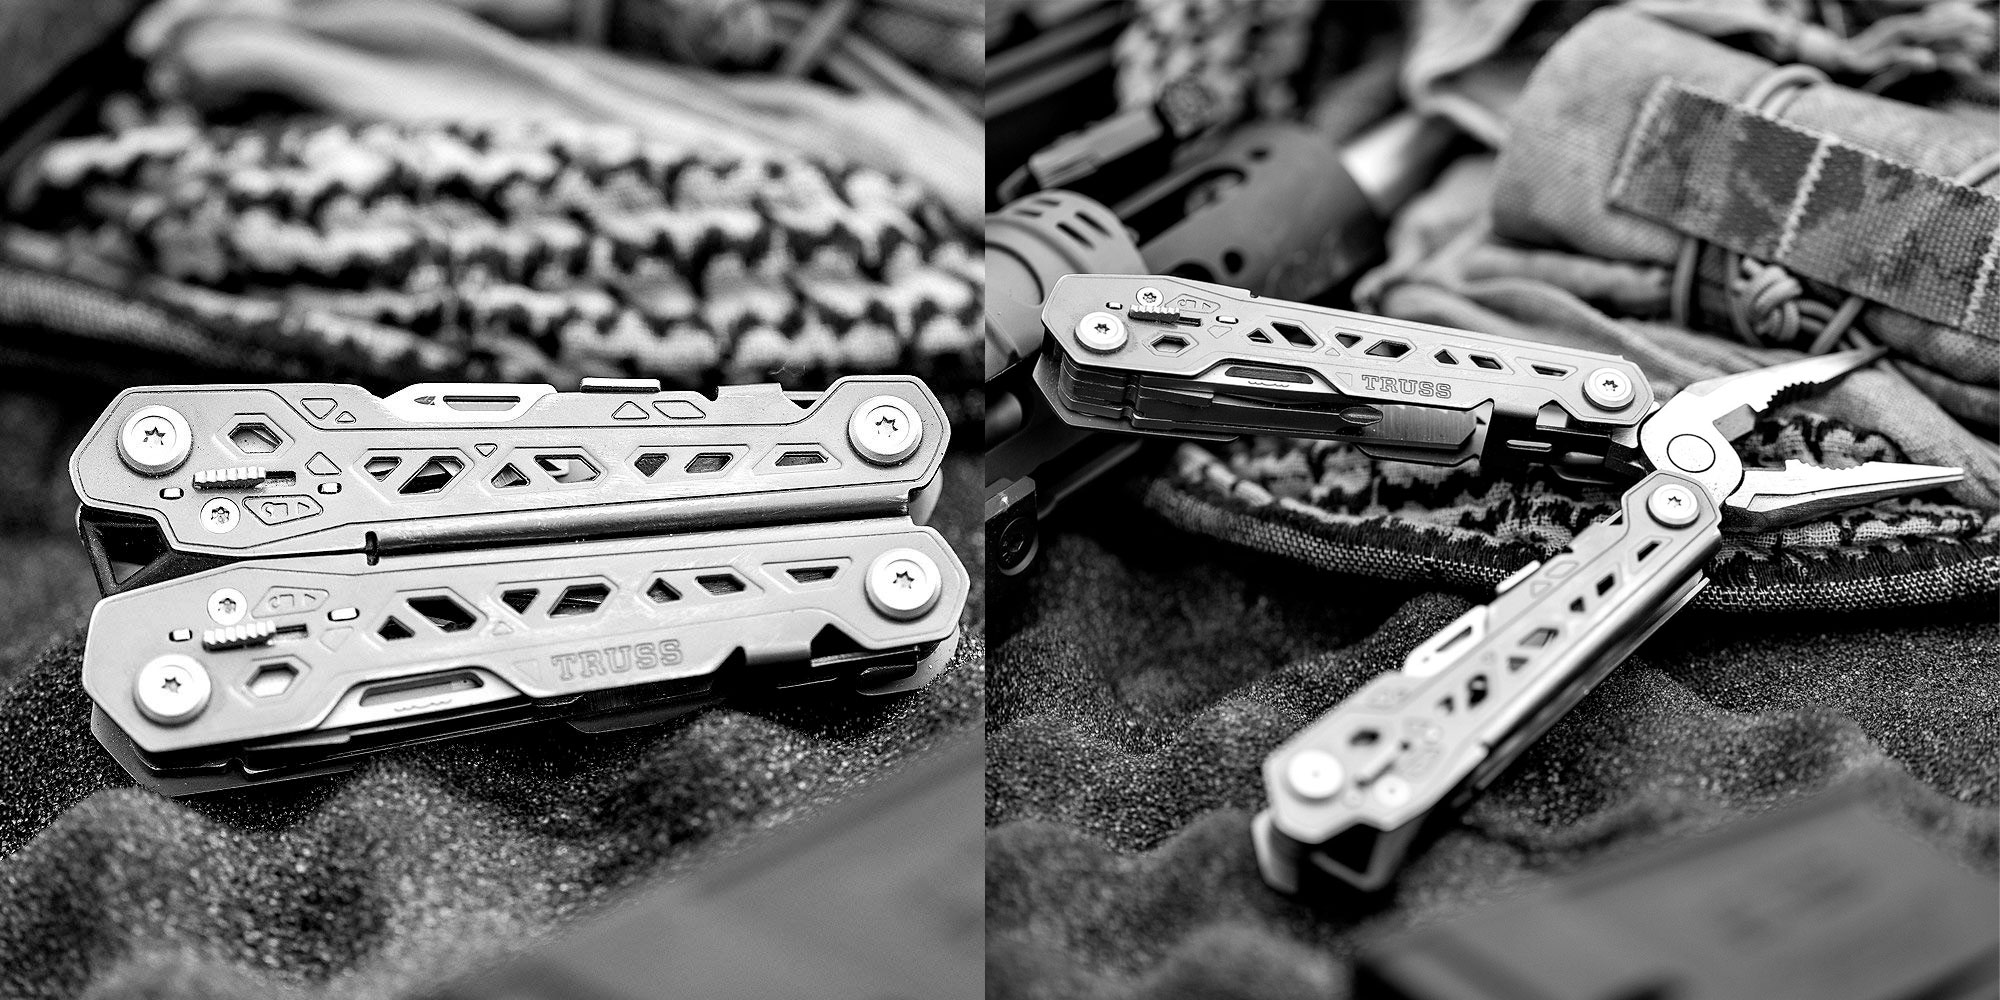 For $25.50, everyone needs Gerber's highly-rated Truss multitool w/ sheath